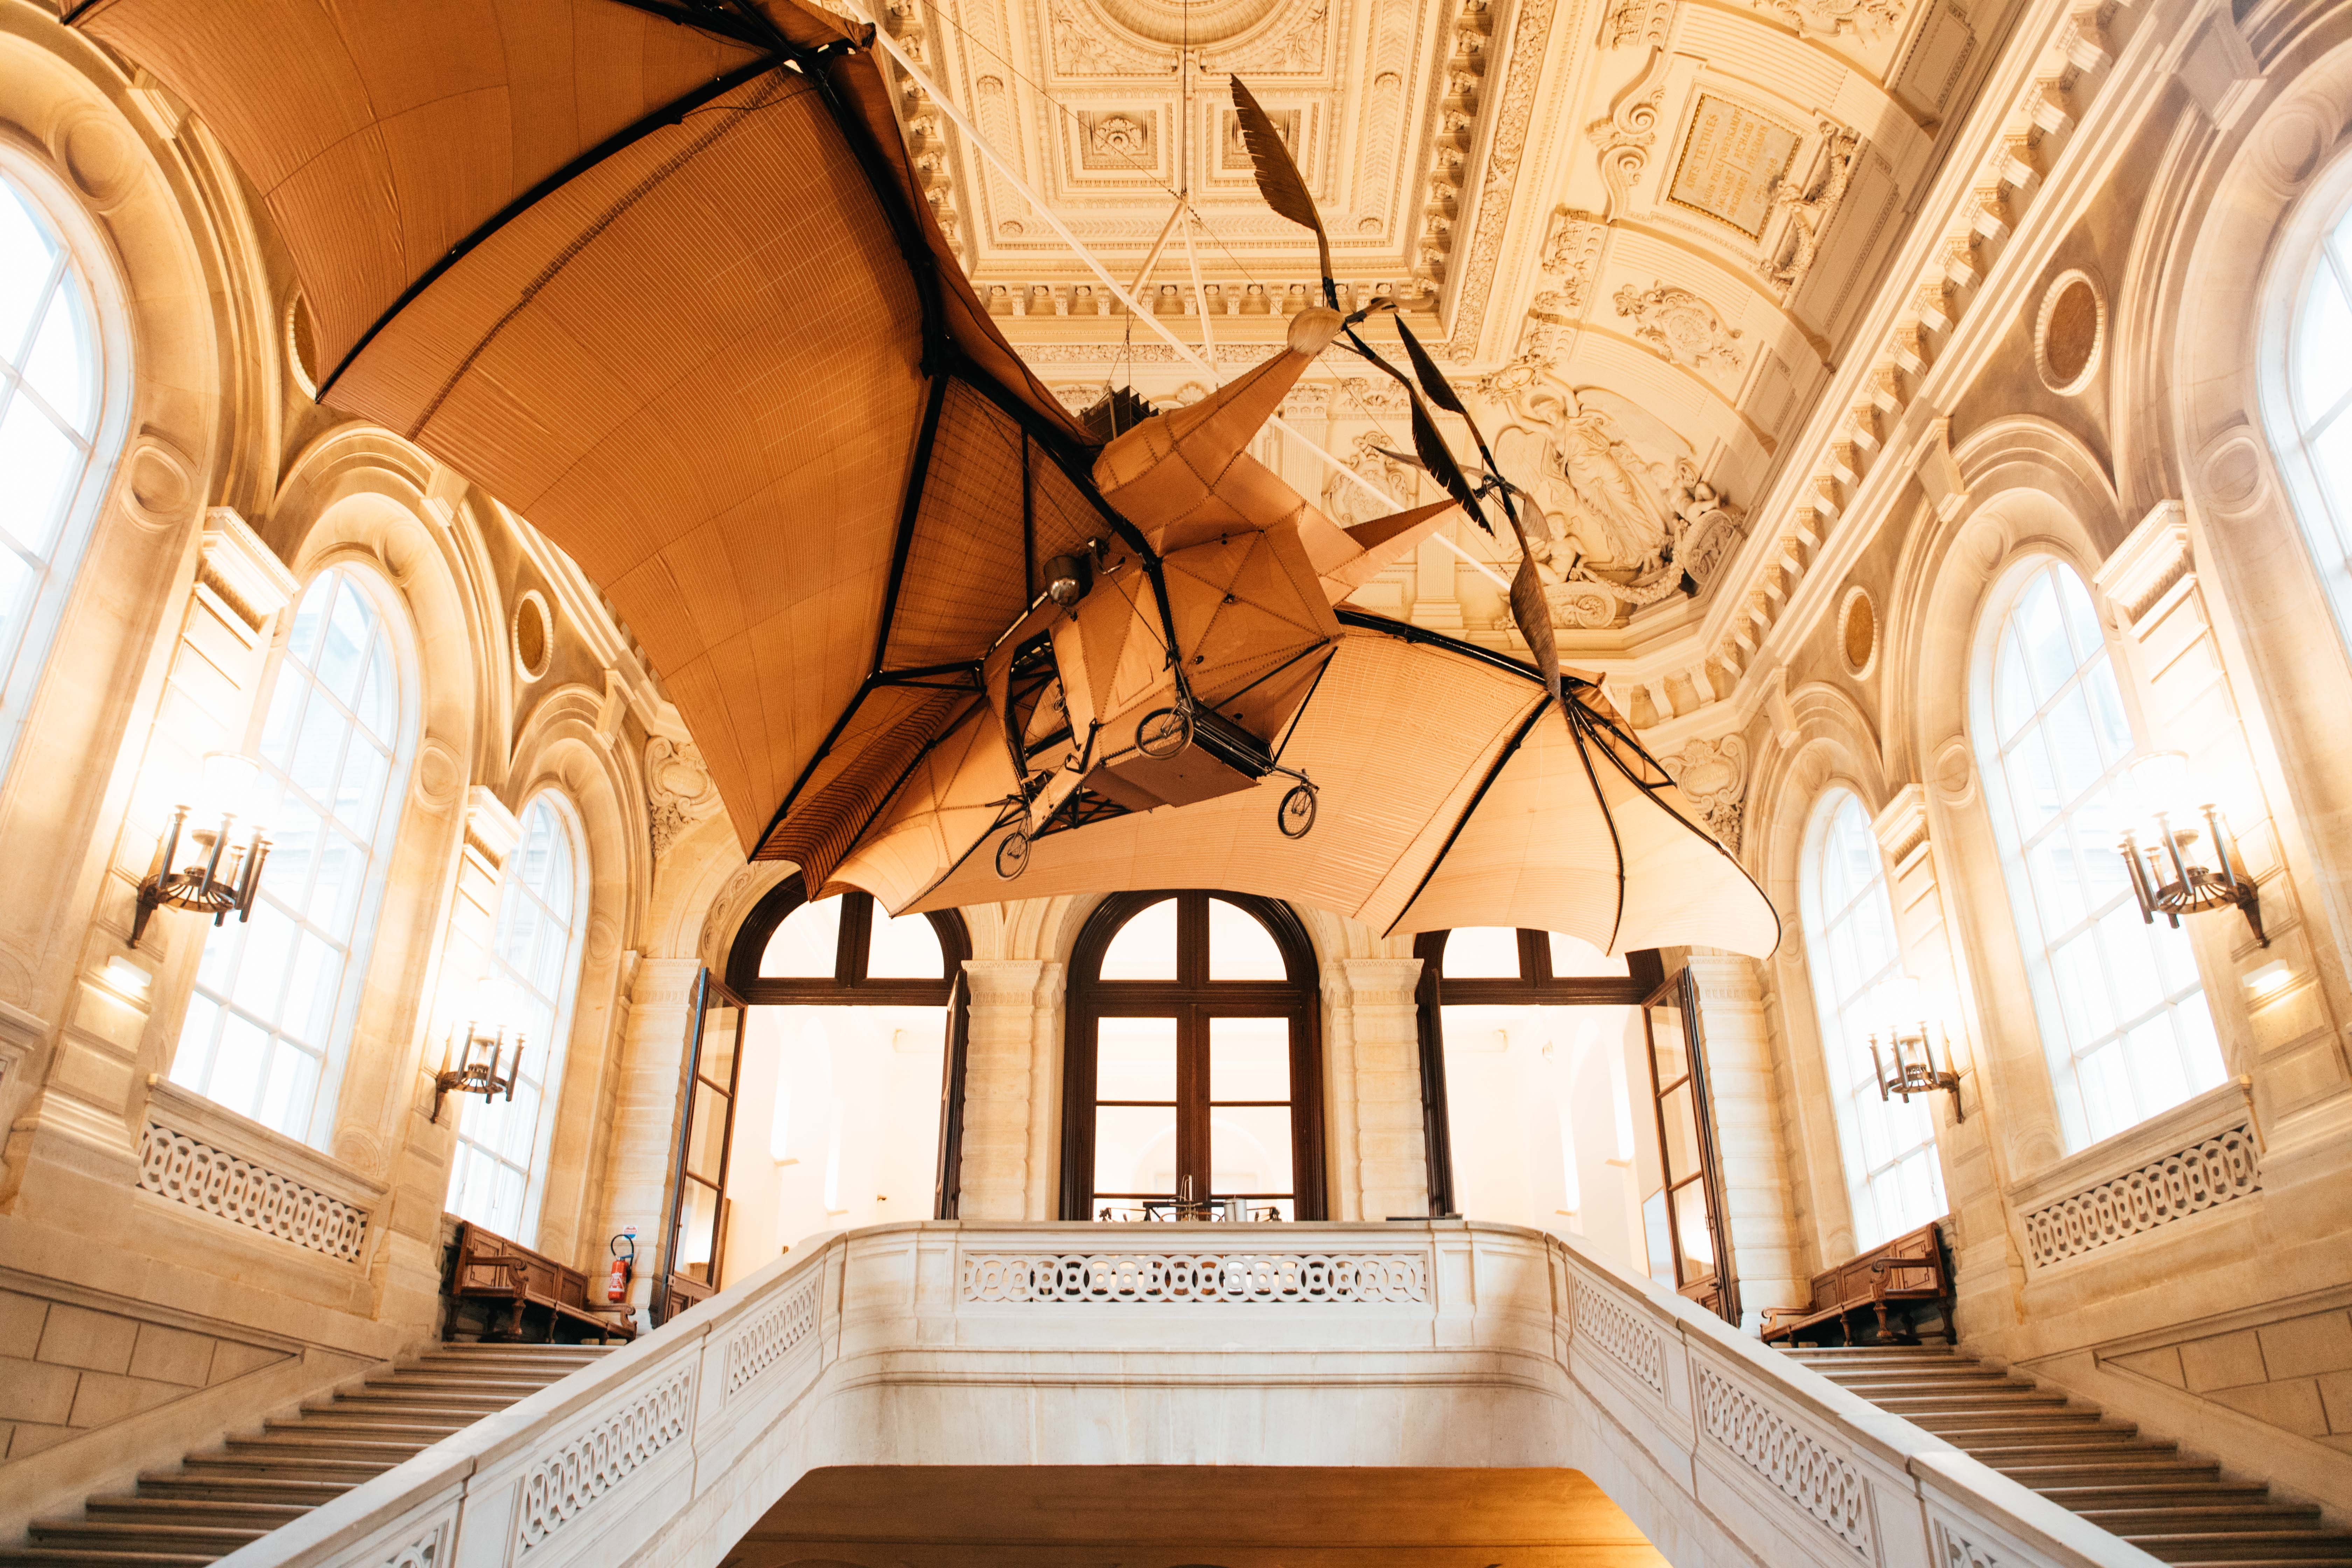 Ornate stairwell and ceiling architecture with flying machine at Metiers Art Museum